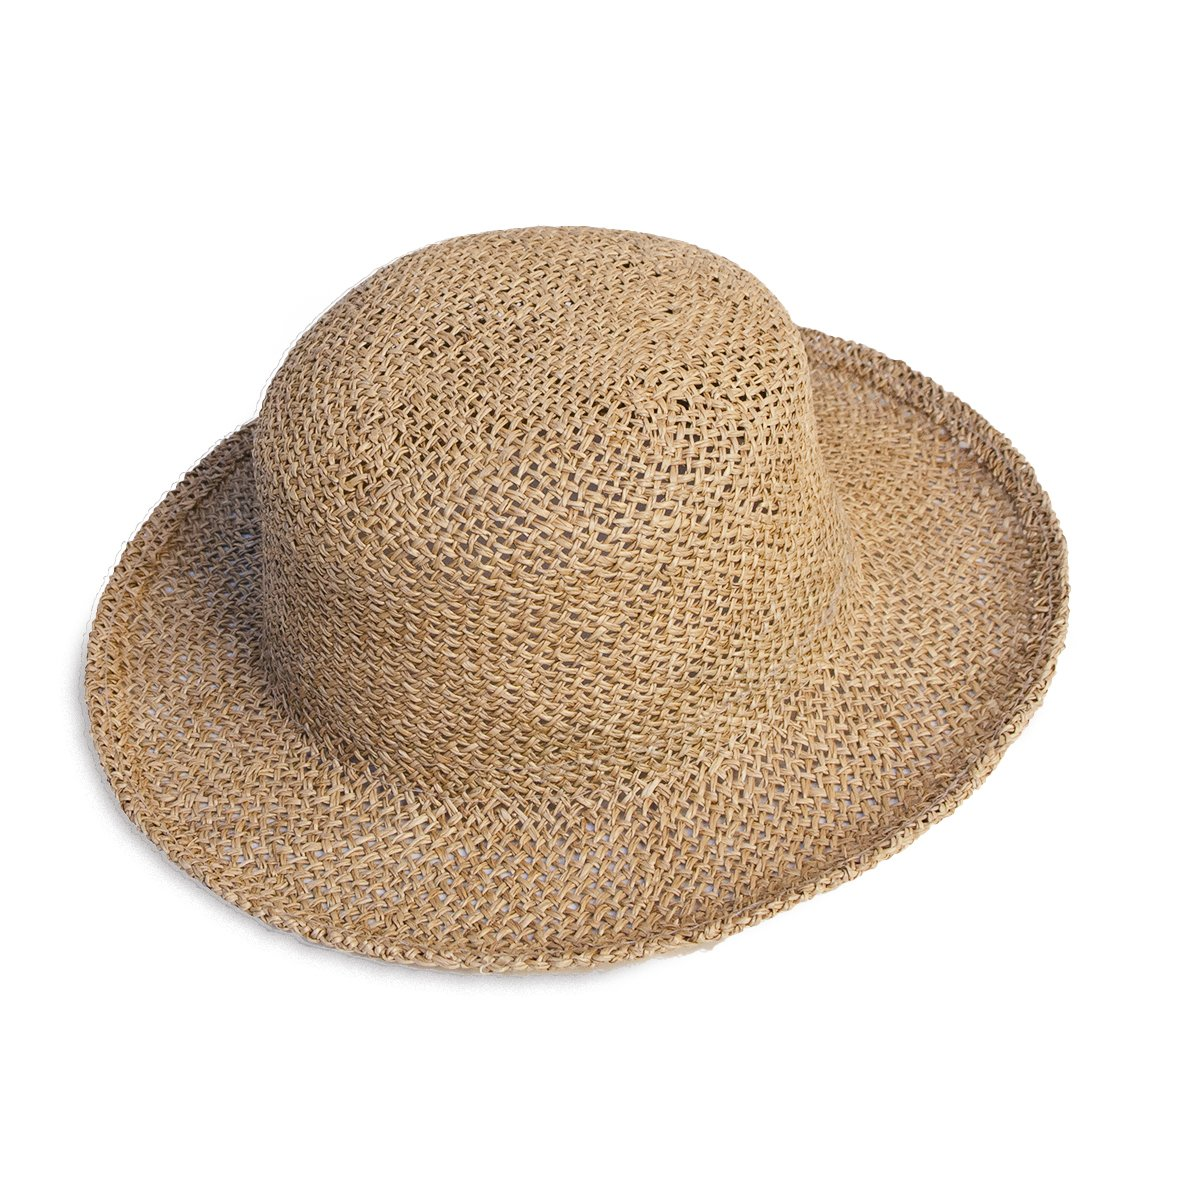 Women's Natural Straw Sun Hat